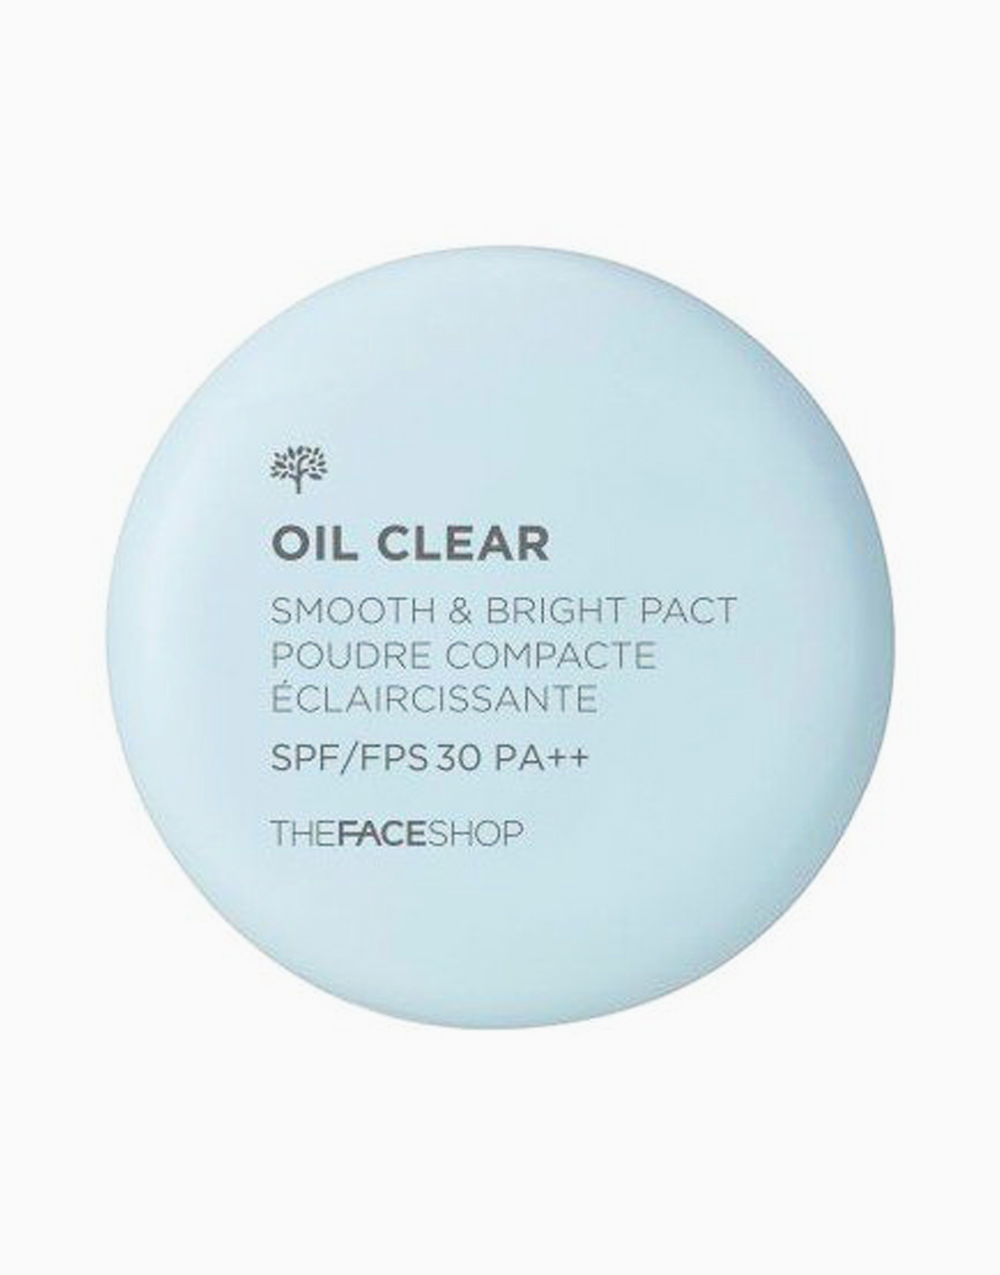 Oil Clear Smooth & Bright Pact SPF30 PA++ in N203 by The Face Shop